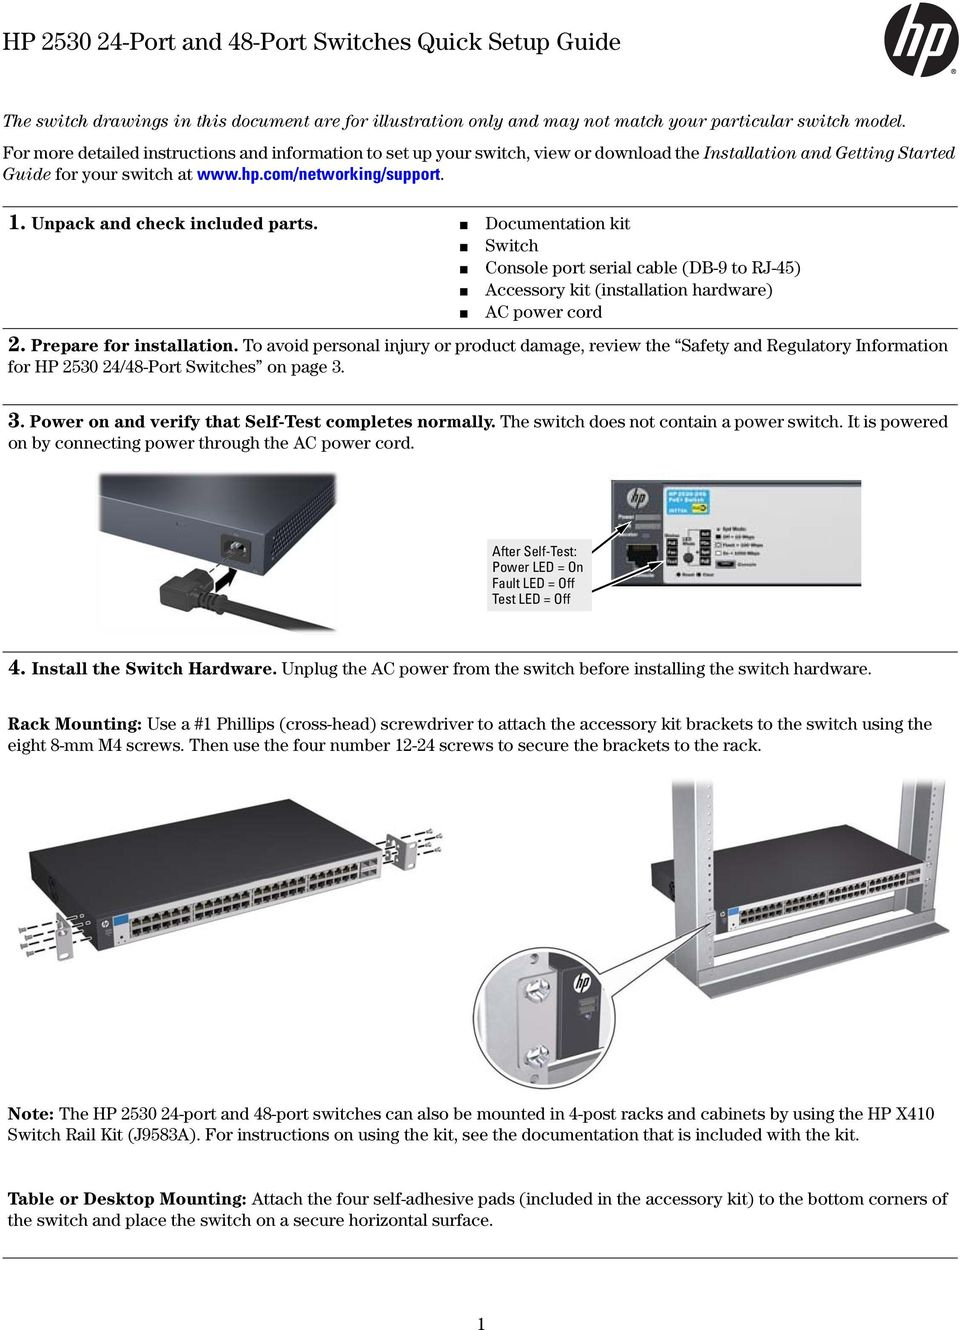 Hp Port And 48 Switches Quick Setup Guide Pdf Power Over Ethernet Wiring Diagram Note The Dmx Documentation Kit Switch Console Serial Cable Db